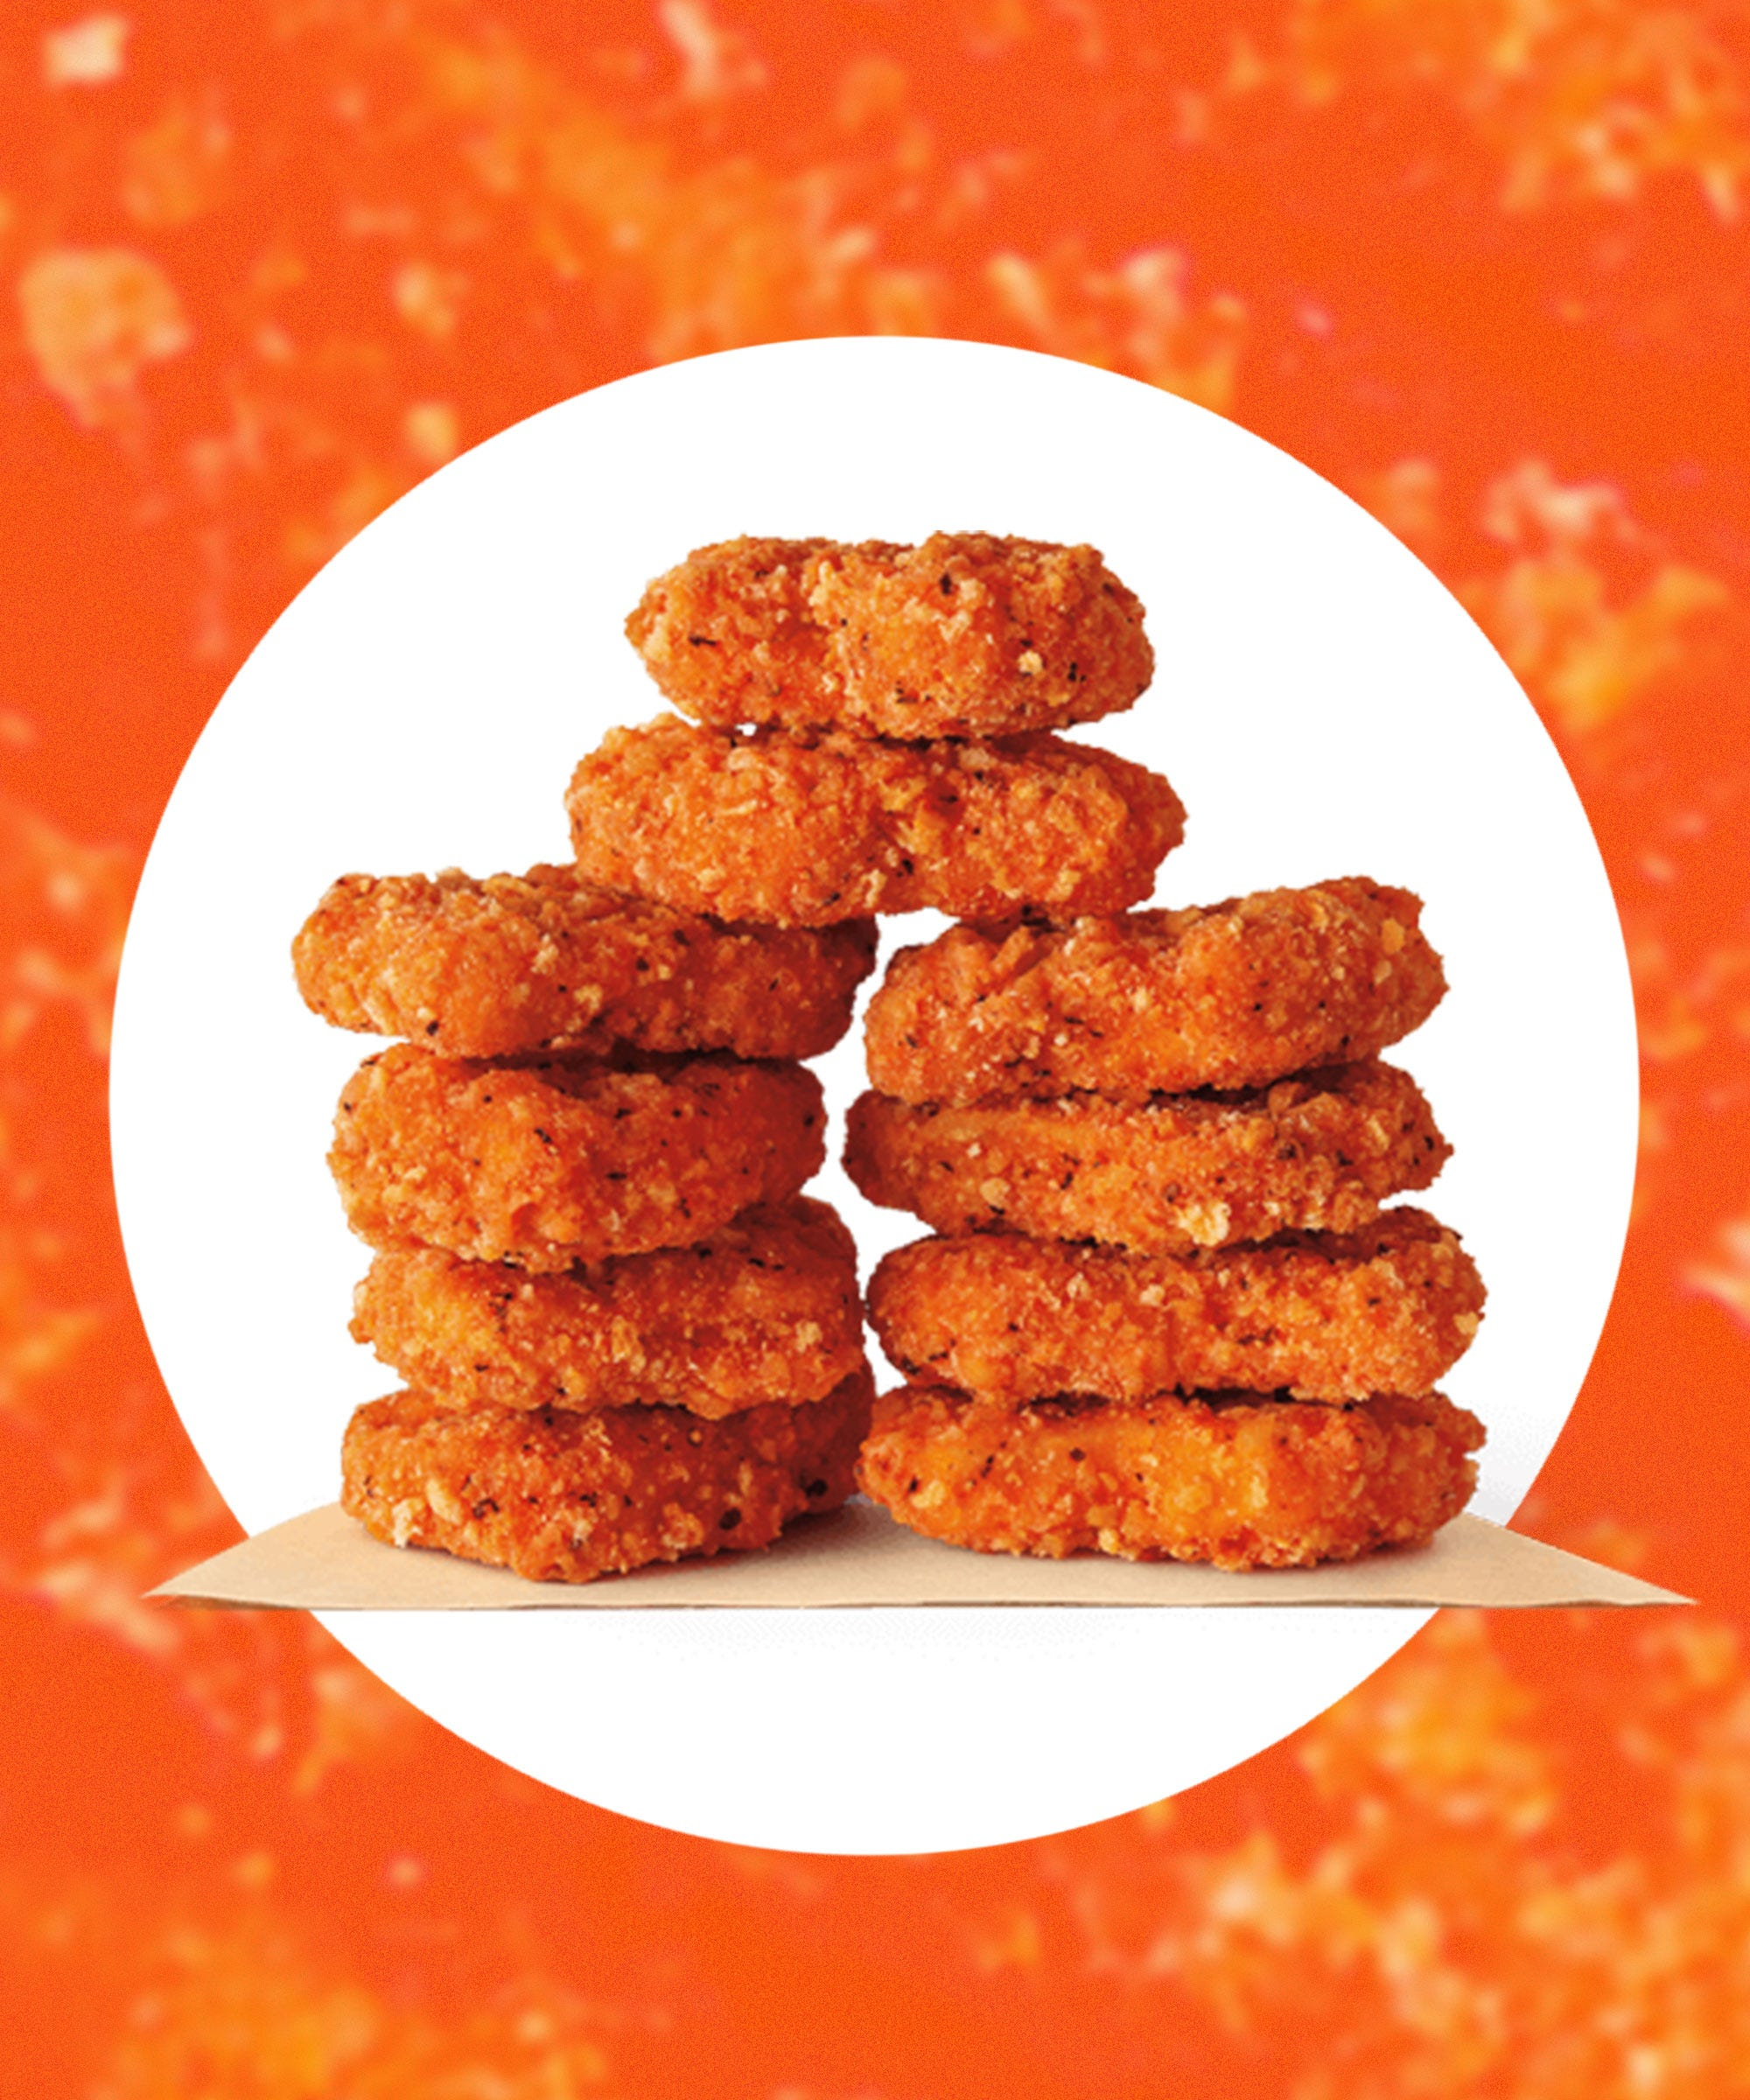 Image result for wendy's spicy chicken nuggets